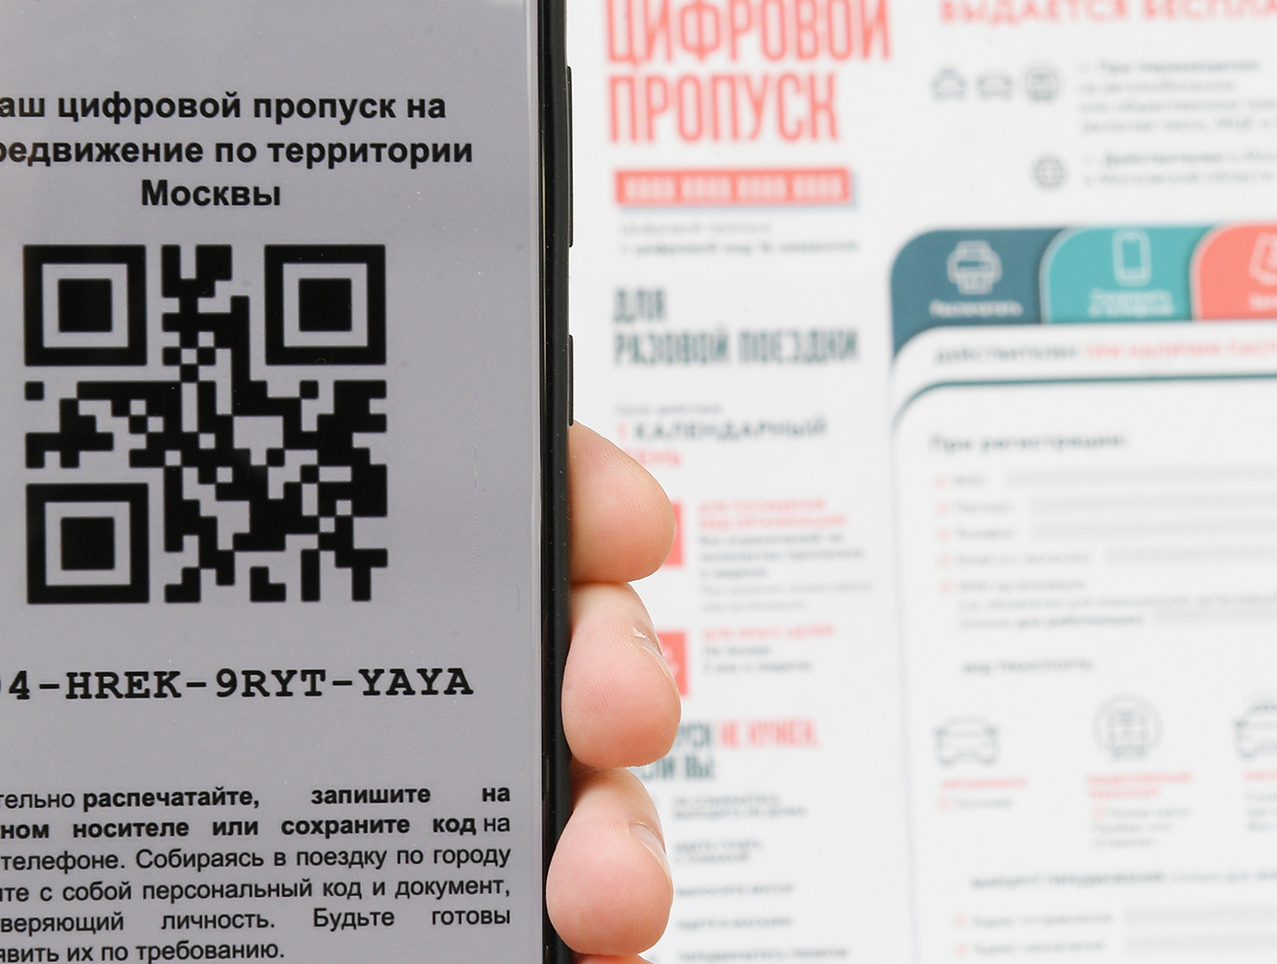 muscovites-complained-of-cancellation-of-digital-passes